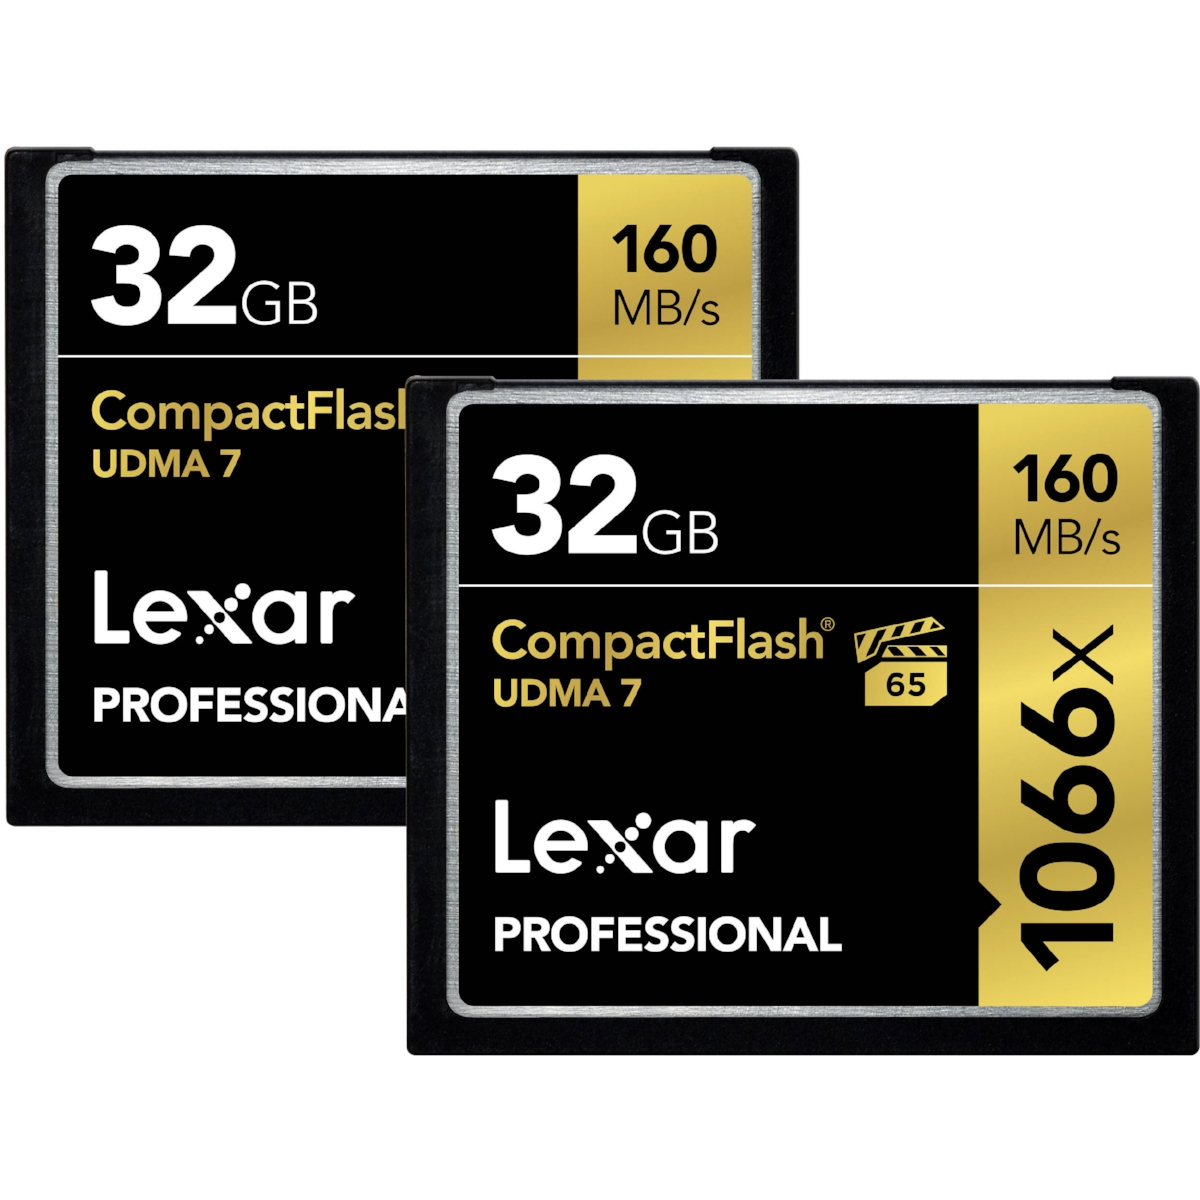 NIKON D810 - Lexar Professional 1066X CF Card - 32gb, 64gb, and 128gb - (Lexar Discontinued Memory Cards)